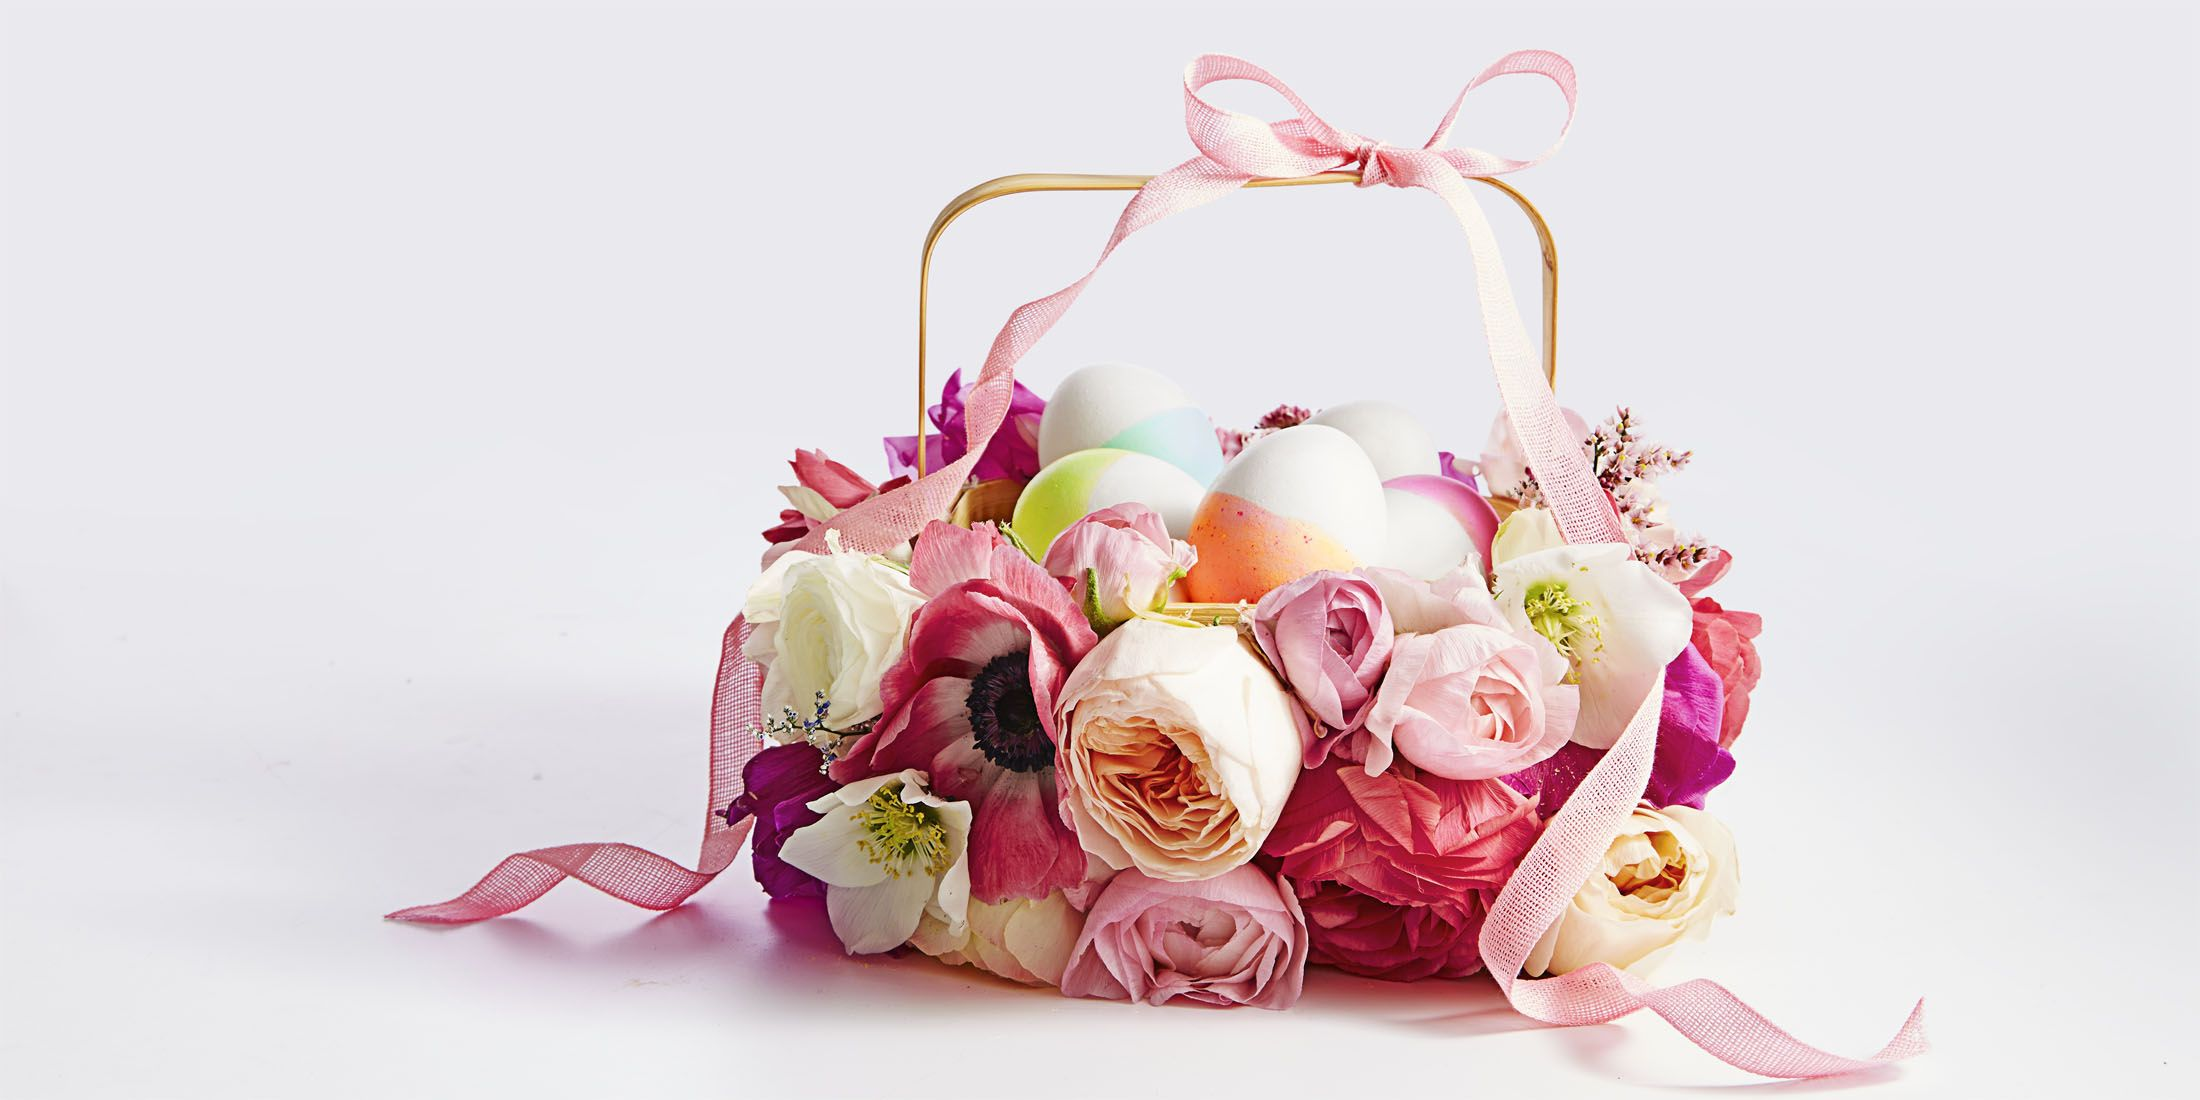 30+ Creative Easter Basket Ideas for Everyone In Your Family